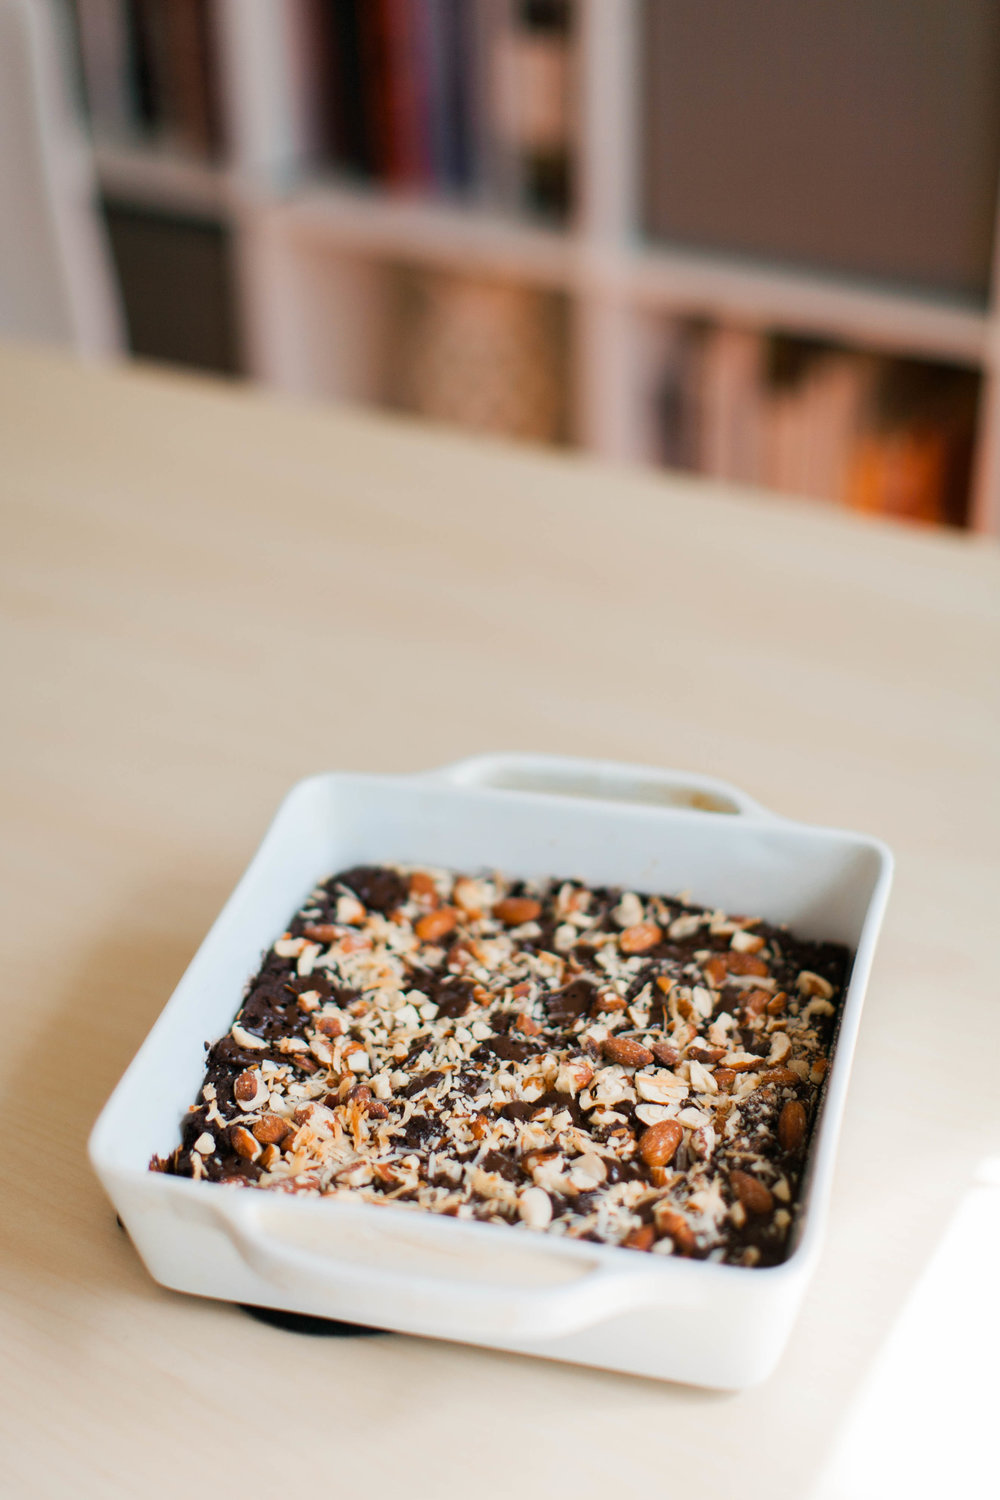 jennahazelphotography-fudgy seed brownies -0108.jpg